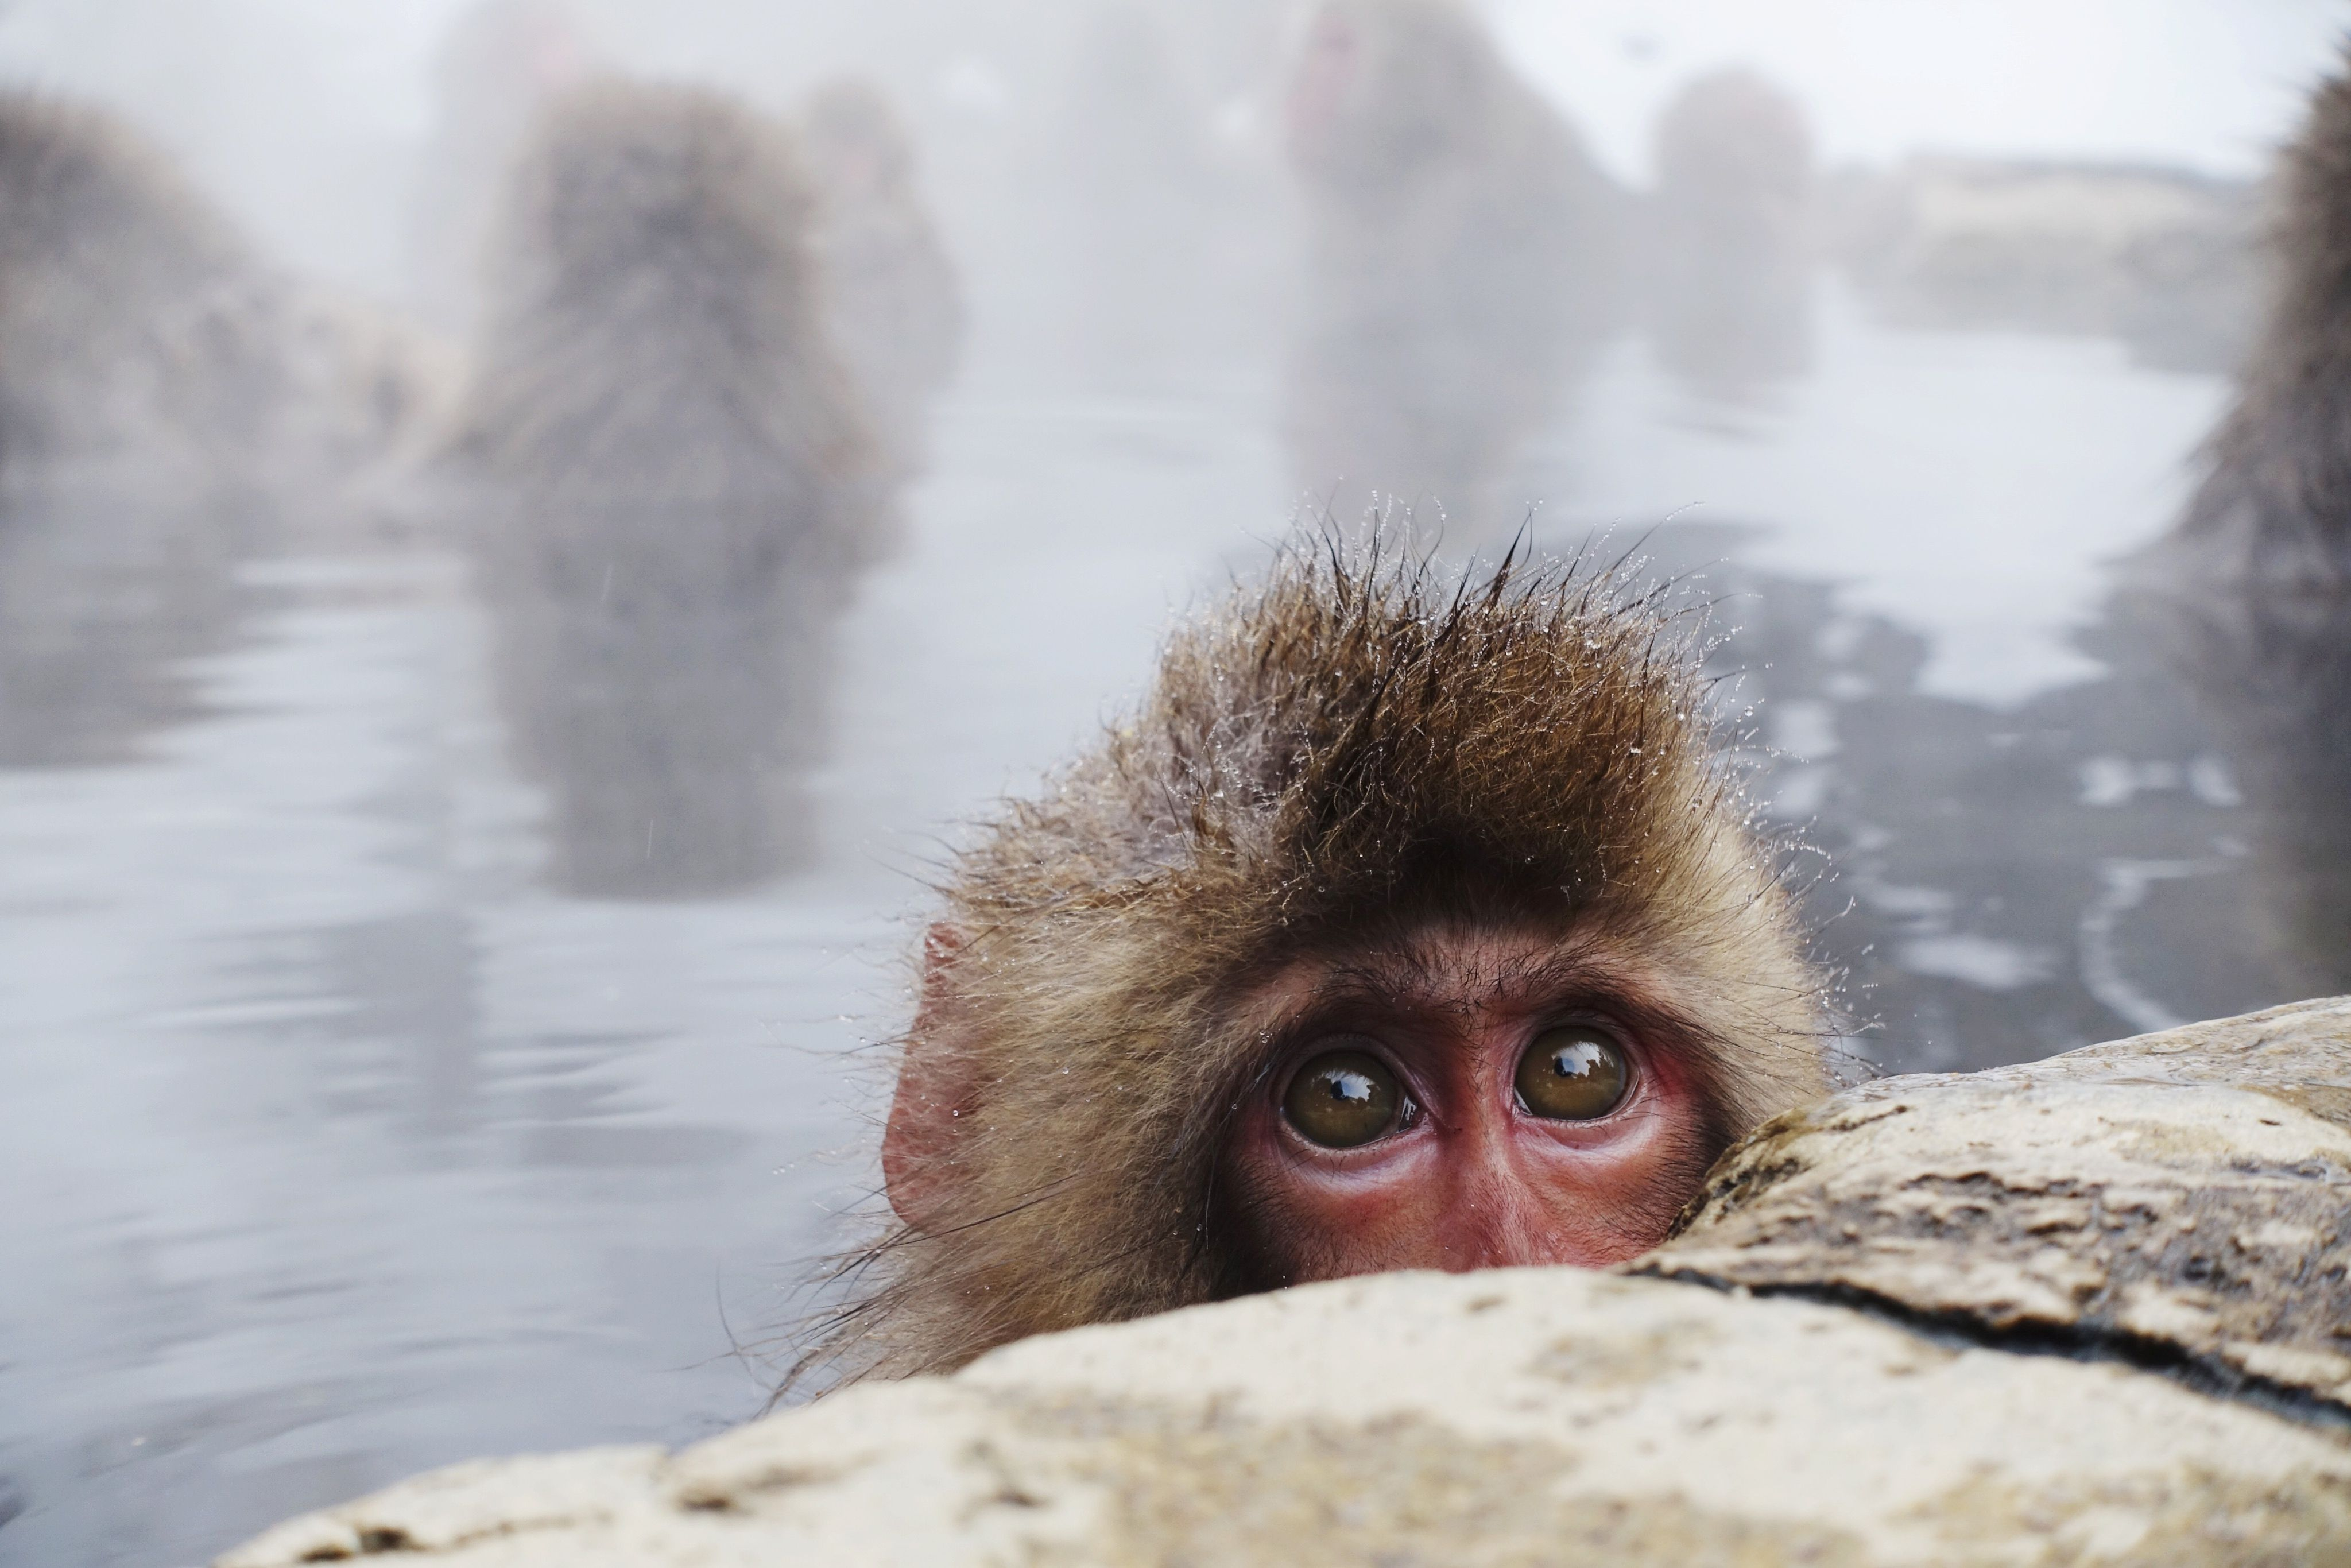 A Guide To The Wild Monkey Parks Of Japan